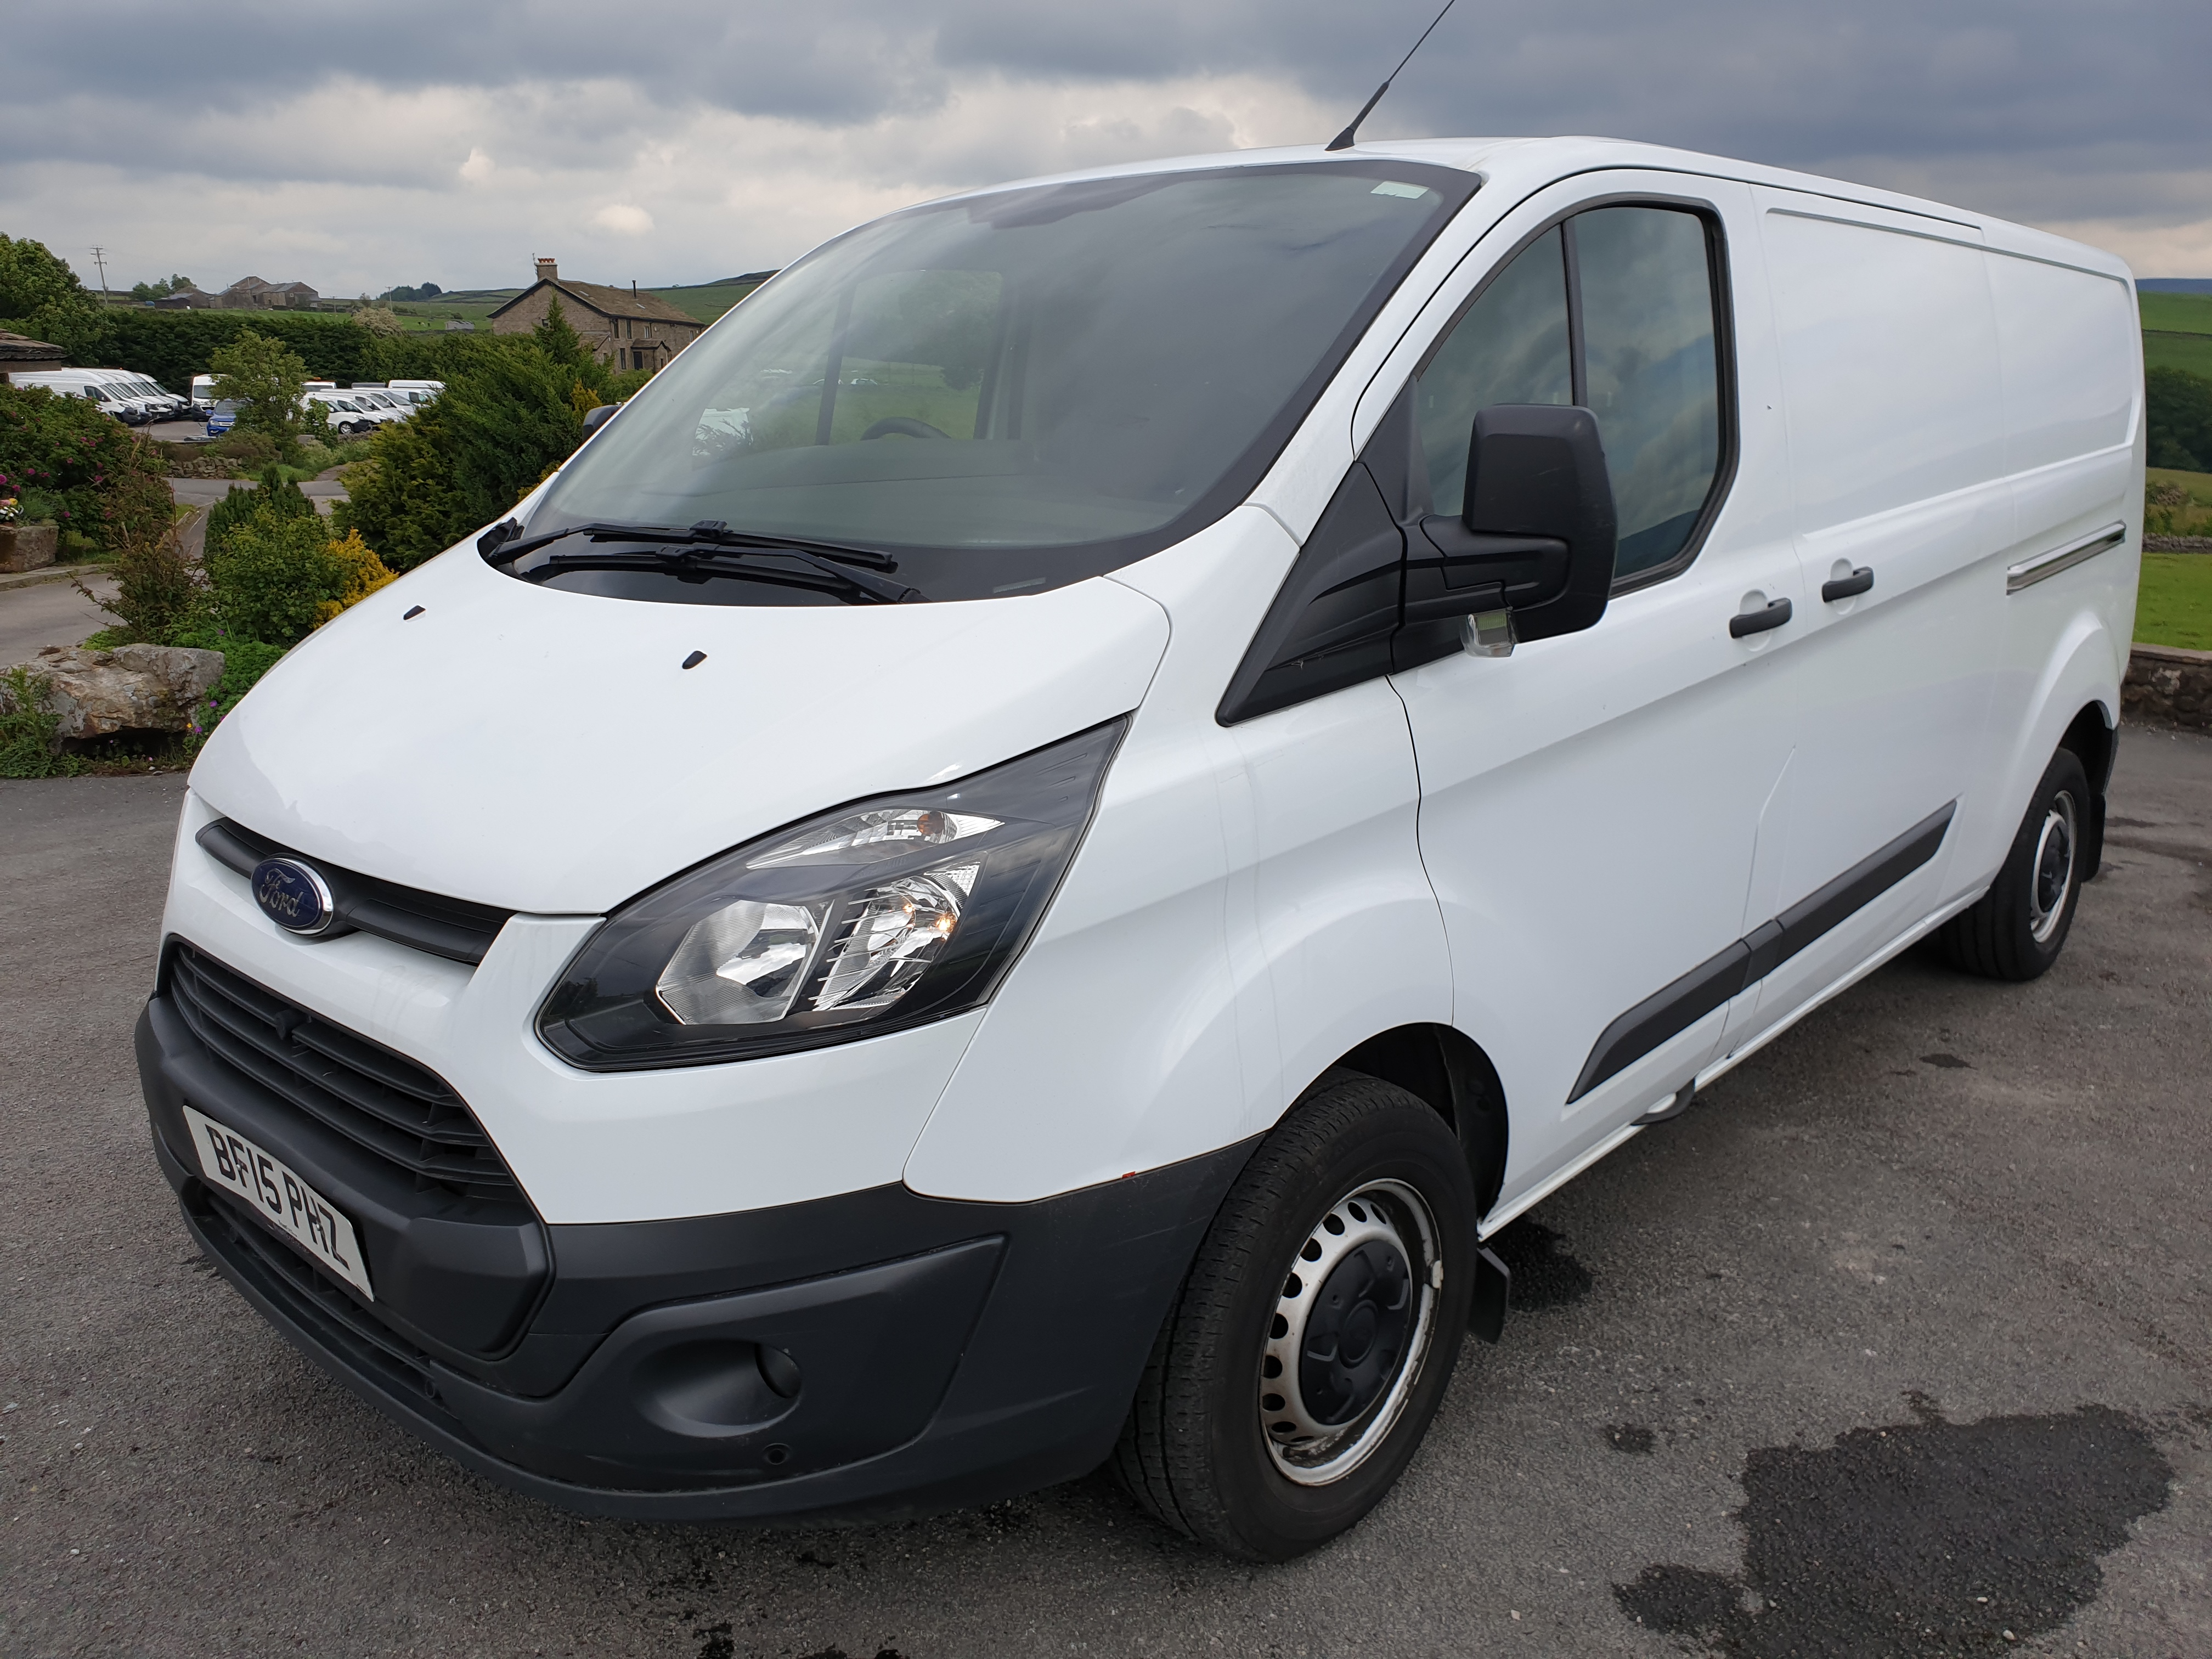 Lot 12 - 2015 / 15 Ford Transit L2H1